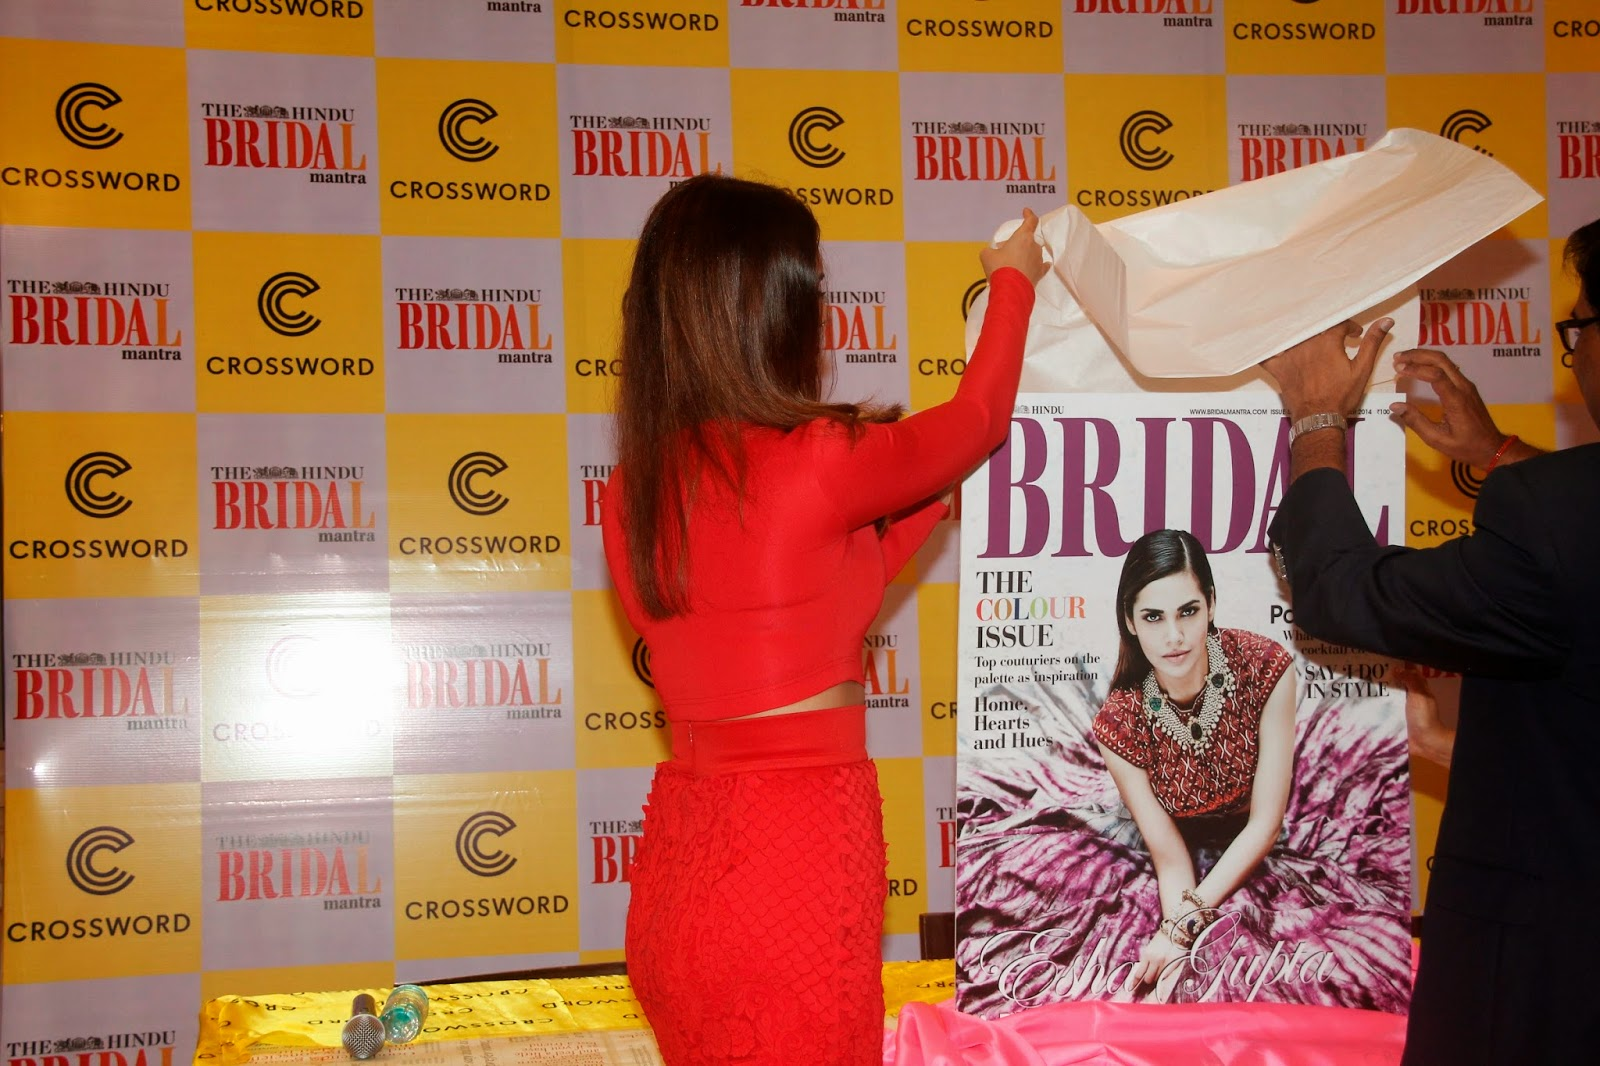 Esha Gupta at 5th Hindu Bridal Mantra Magazine Cover Stills